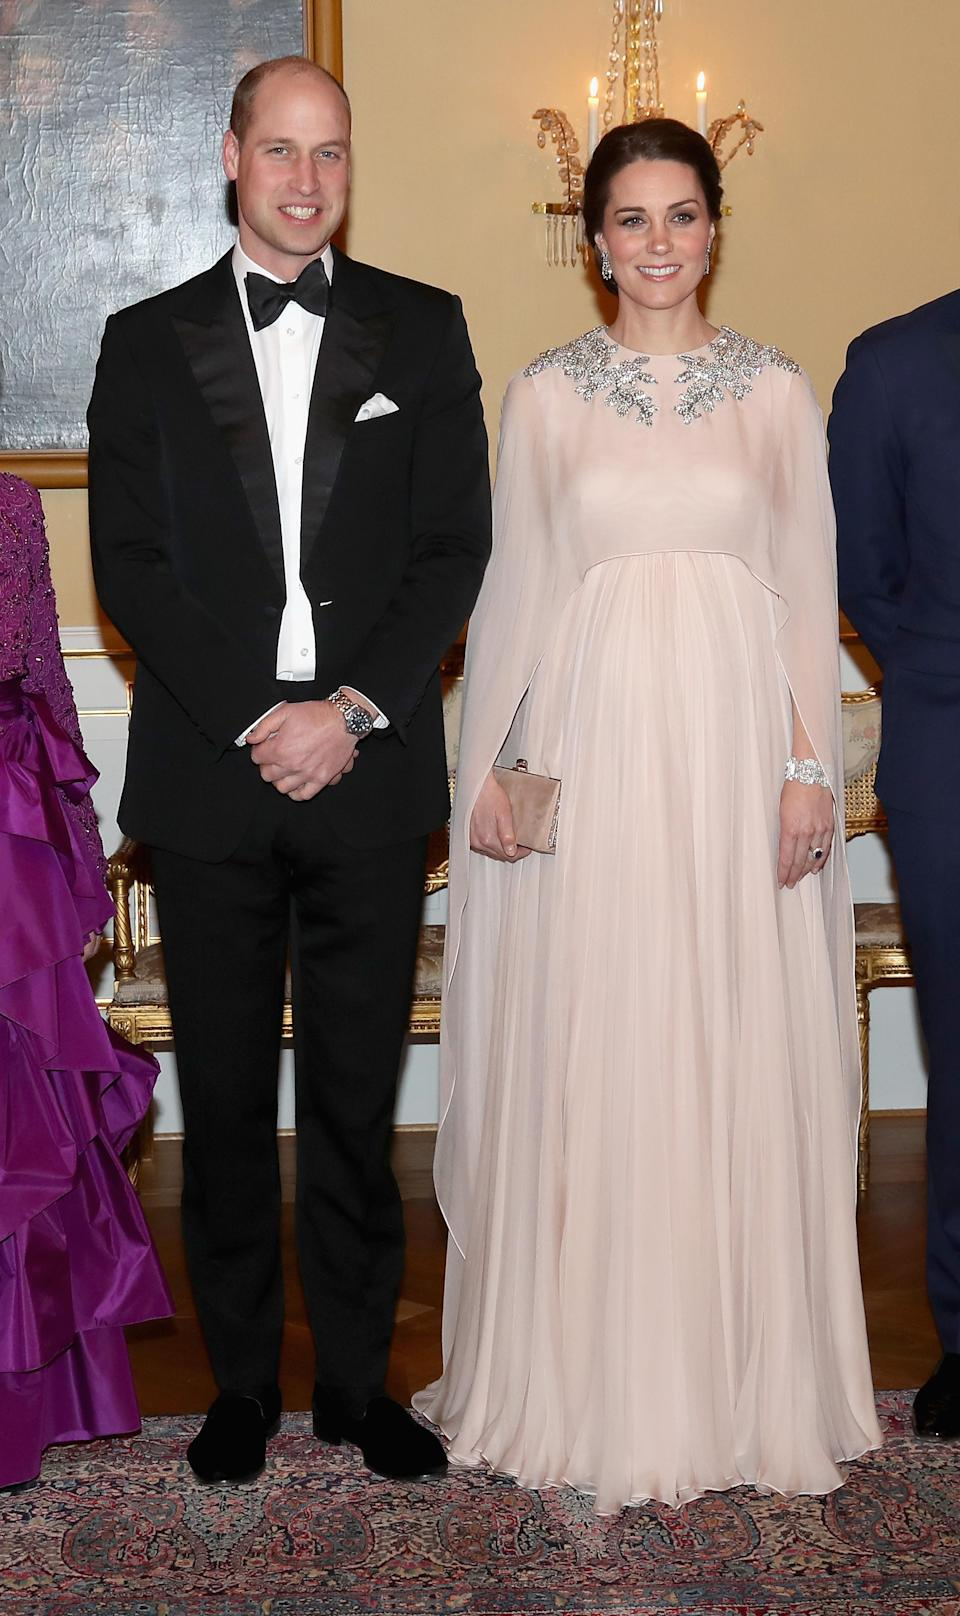 """<p>For a dinner at Stockholm's royal palace during the couple's Scandinavian tour, the Duchess of Cambridge wore a sheer Alexander McQueen cape dress. For an idea of price, a berry-hued version currently <a rel=""""nofollow noopener"""" href=""""https://www.harrods.com/en-gb/alexander-mcqueen/embellished-silk-cape-gown-p000000000006016275?ranMID=36666&ranEAID=TnL5HPStwNw&ranSiteID=TnL5HPStwNw-SJkaa2WAUdbrhHUqL7cxJg&cid=ls_uk&utm_source=Affiliate&utm_medium=RakutenAffiliate&utm_campaign=TnL5HPStwNw&utm_content=10&siteID=TnL5HPStwNw-SJkaa2WAUdbrhHUqL7cxJg"""" target=""""_blank"""" data-ylk=""""slk:retails"""" class=""""link rapid-noclick-resp"""">retails</a> at £7,499. She finished the evening look with a £1,142.85 Jimmy Choo clutch. <em>[Photo: Getty]</em> </p>"""